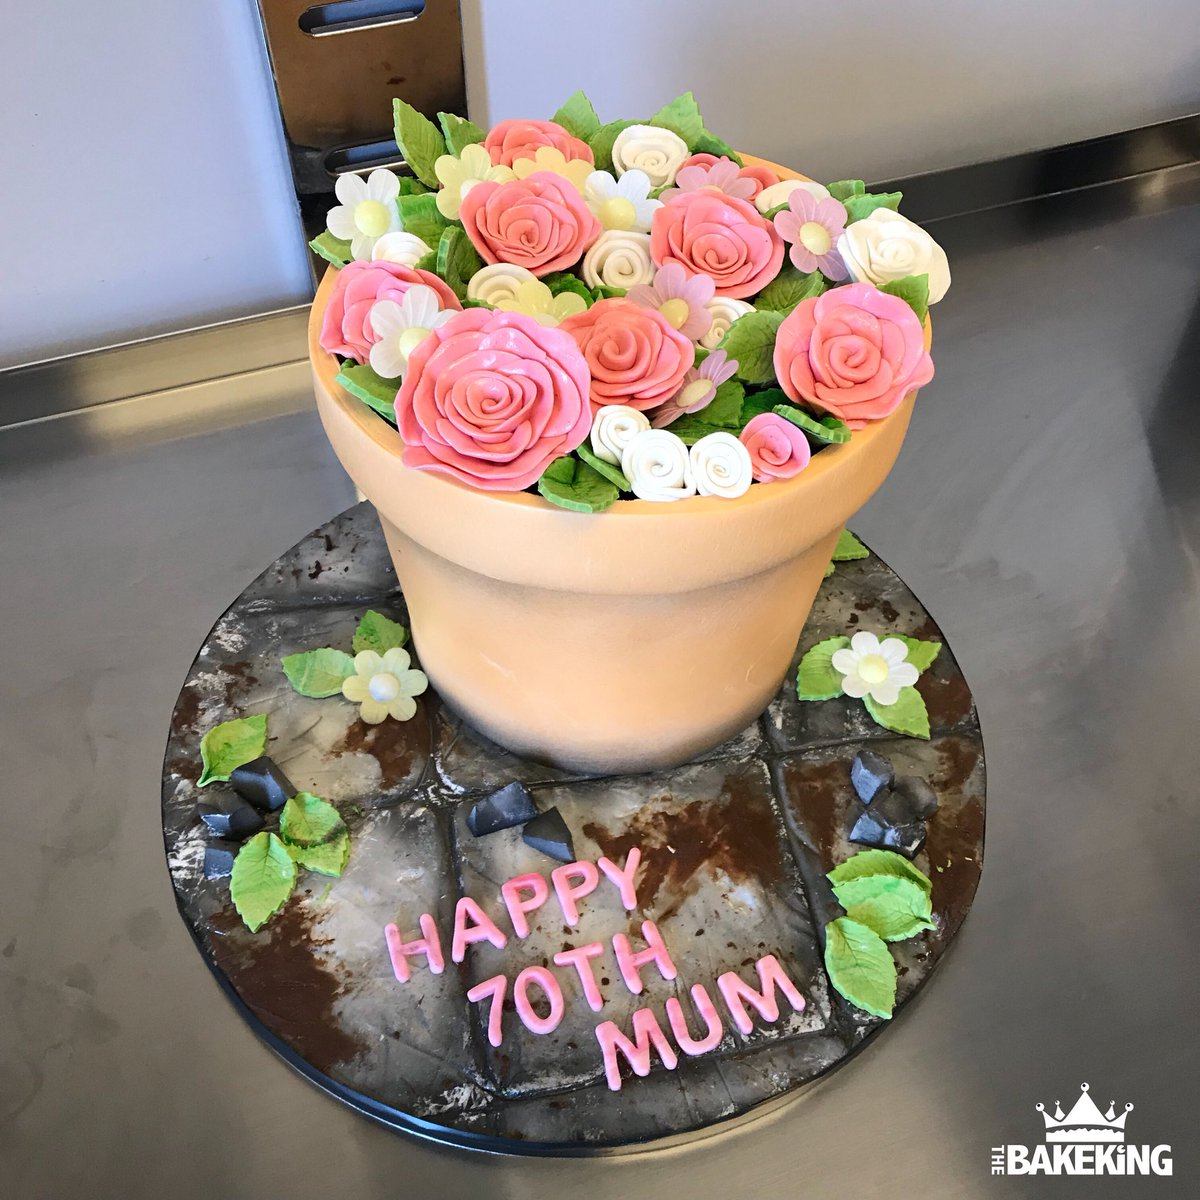 The Bakeking On Twitter Flowerpot Cake For A 70th Birthday Very Happy Birthday To Her Vanilla Cake With Chocolate Ganache Cakes Thebakeking Bakeking Extremecakemakers Cakeart Chocolate Birthdaycake Https T Co Oatcnohoyf